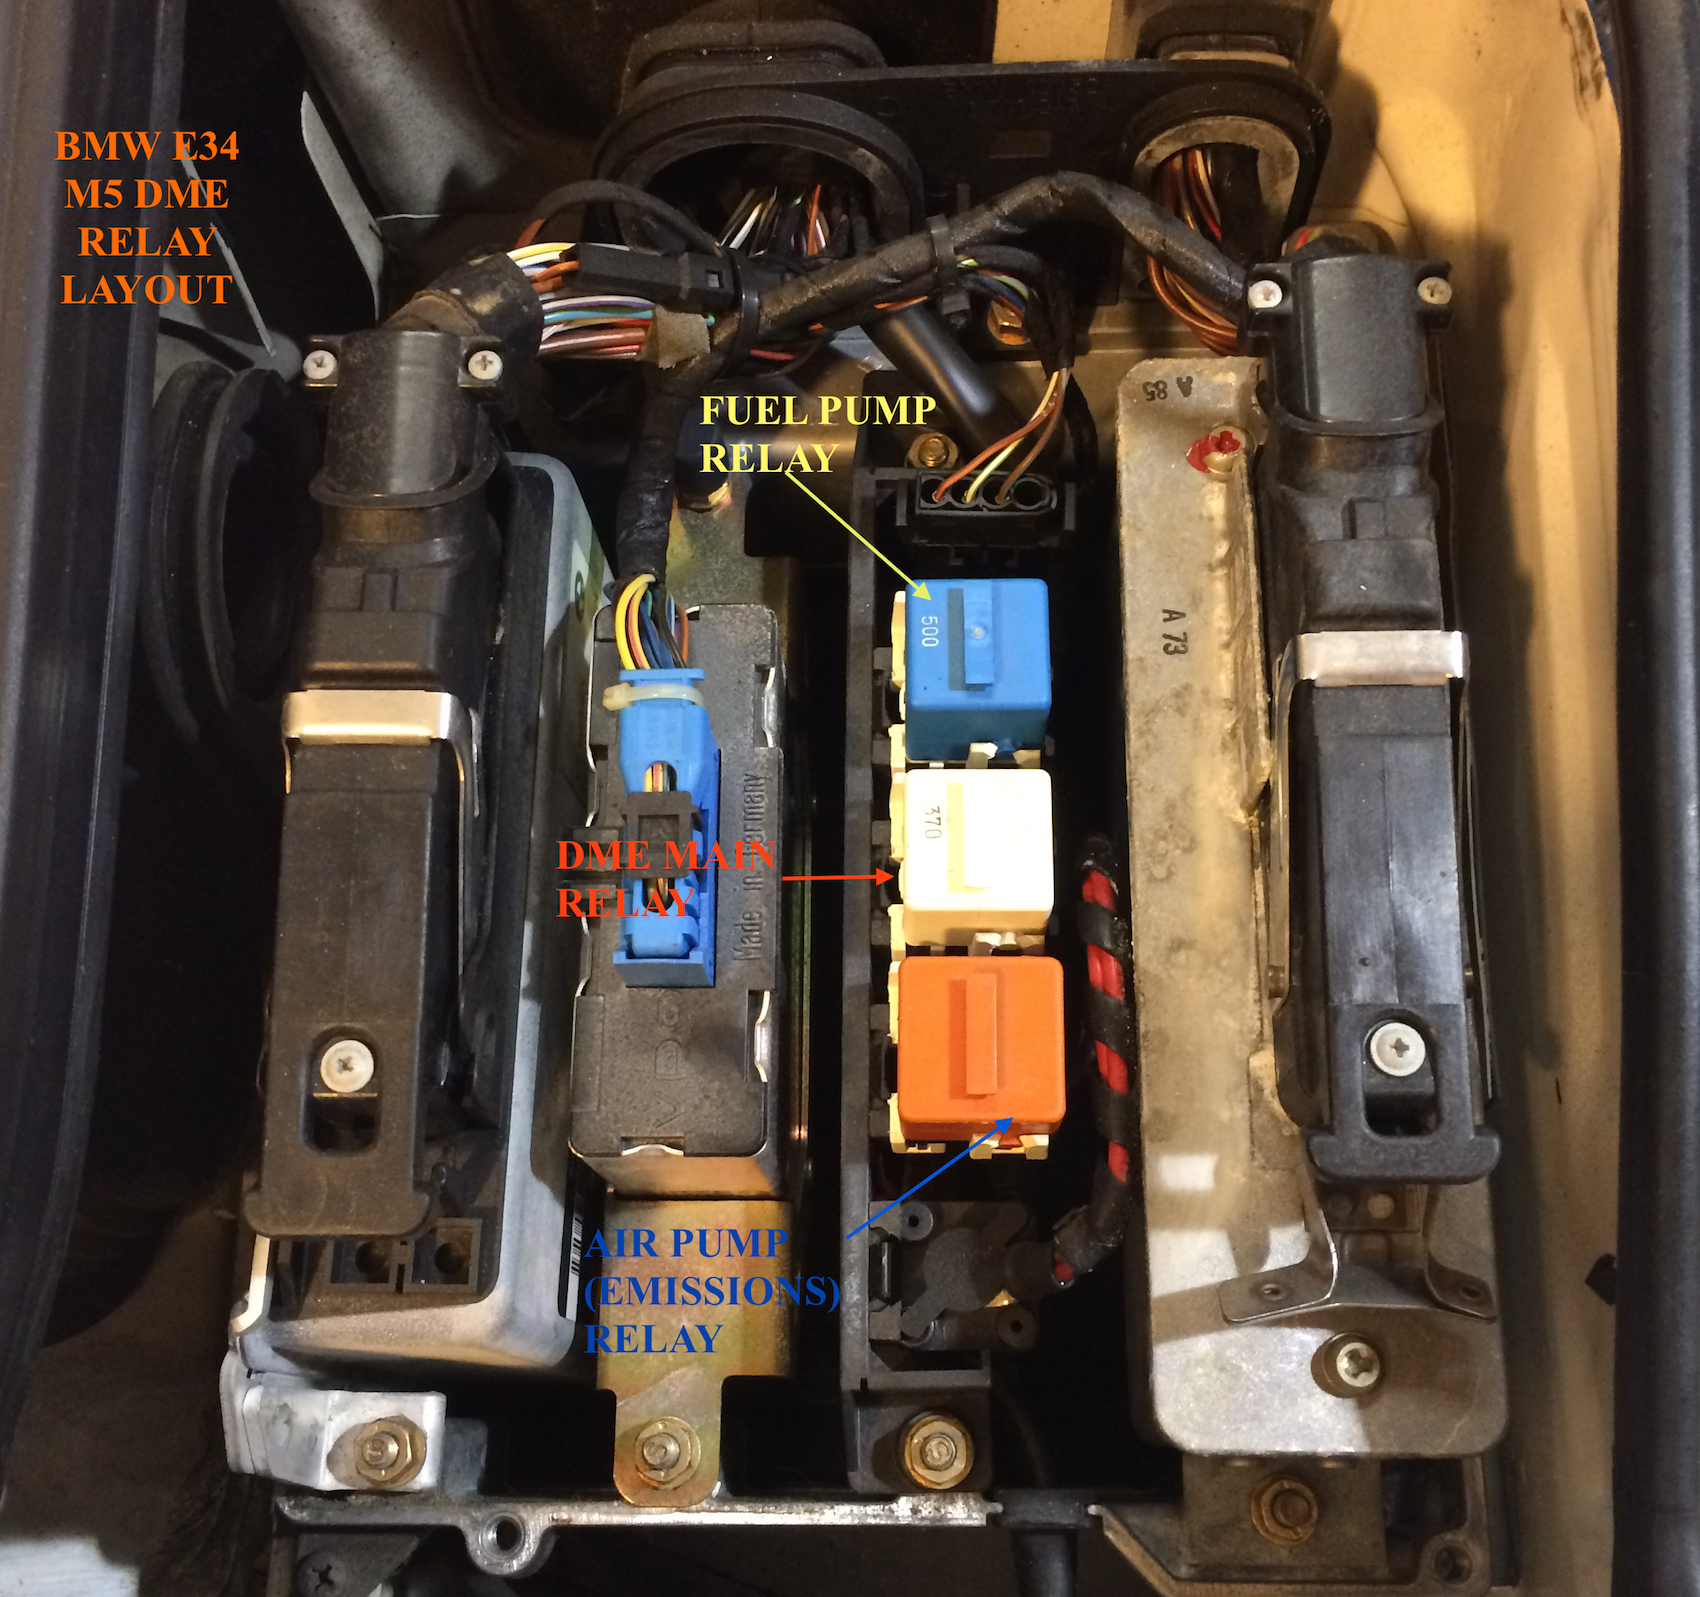 Fuel Pump Relay Question - White or Green - BMW M5 Forum and M6 Forums